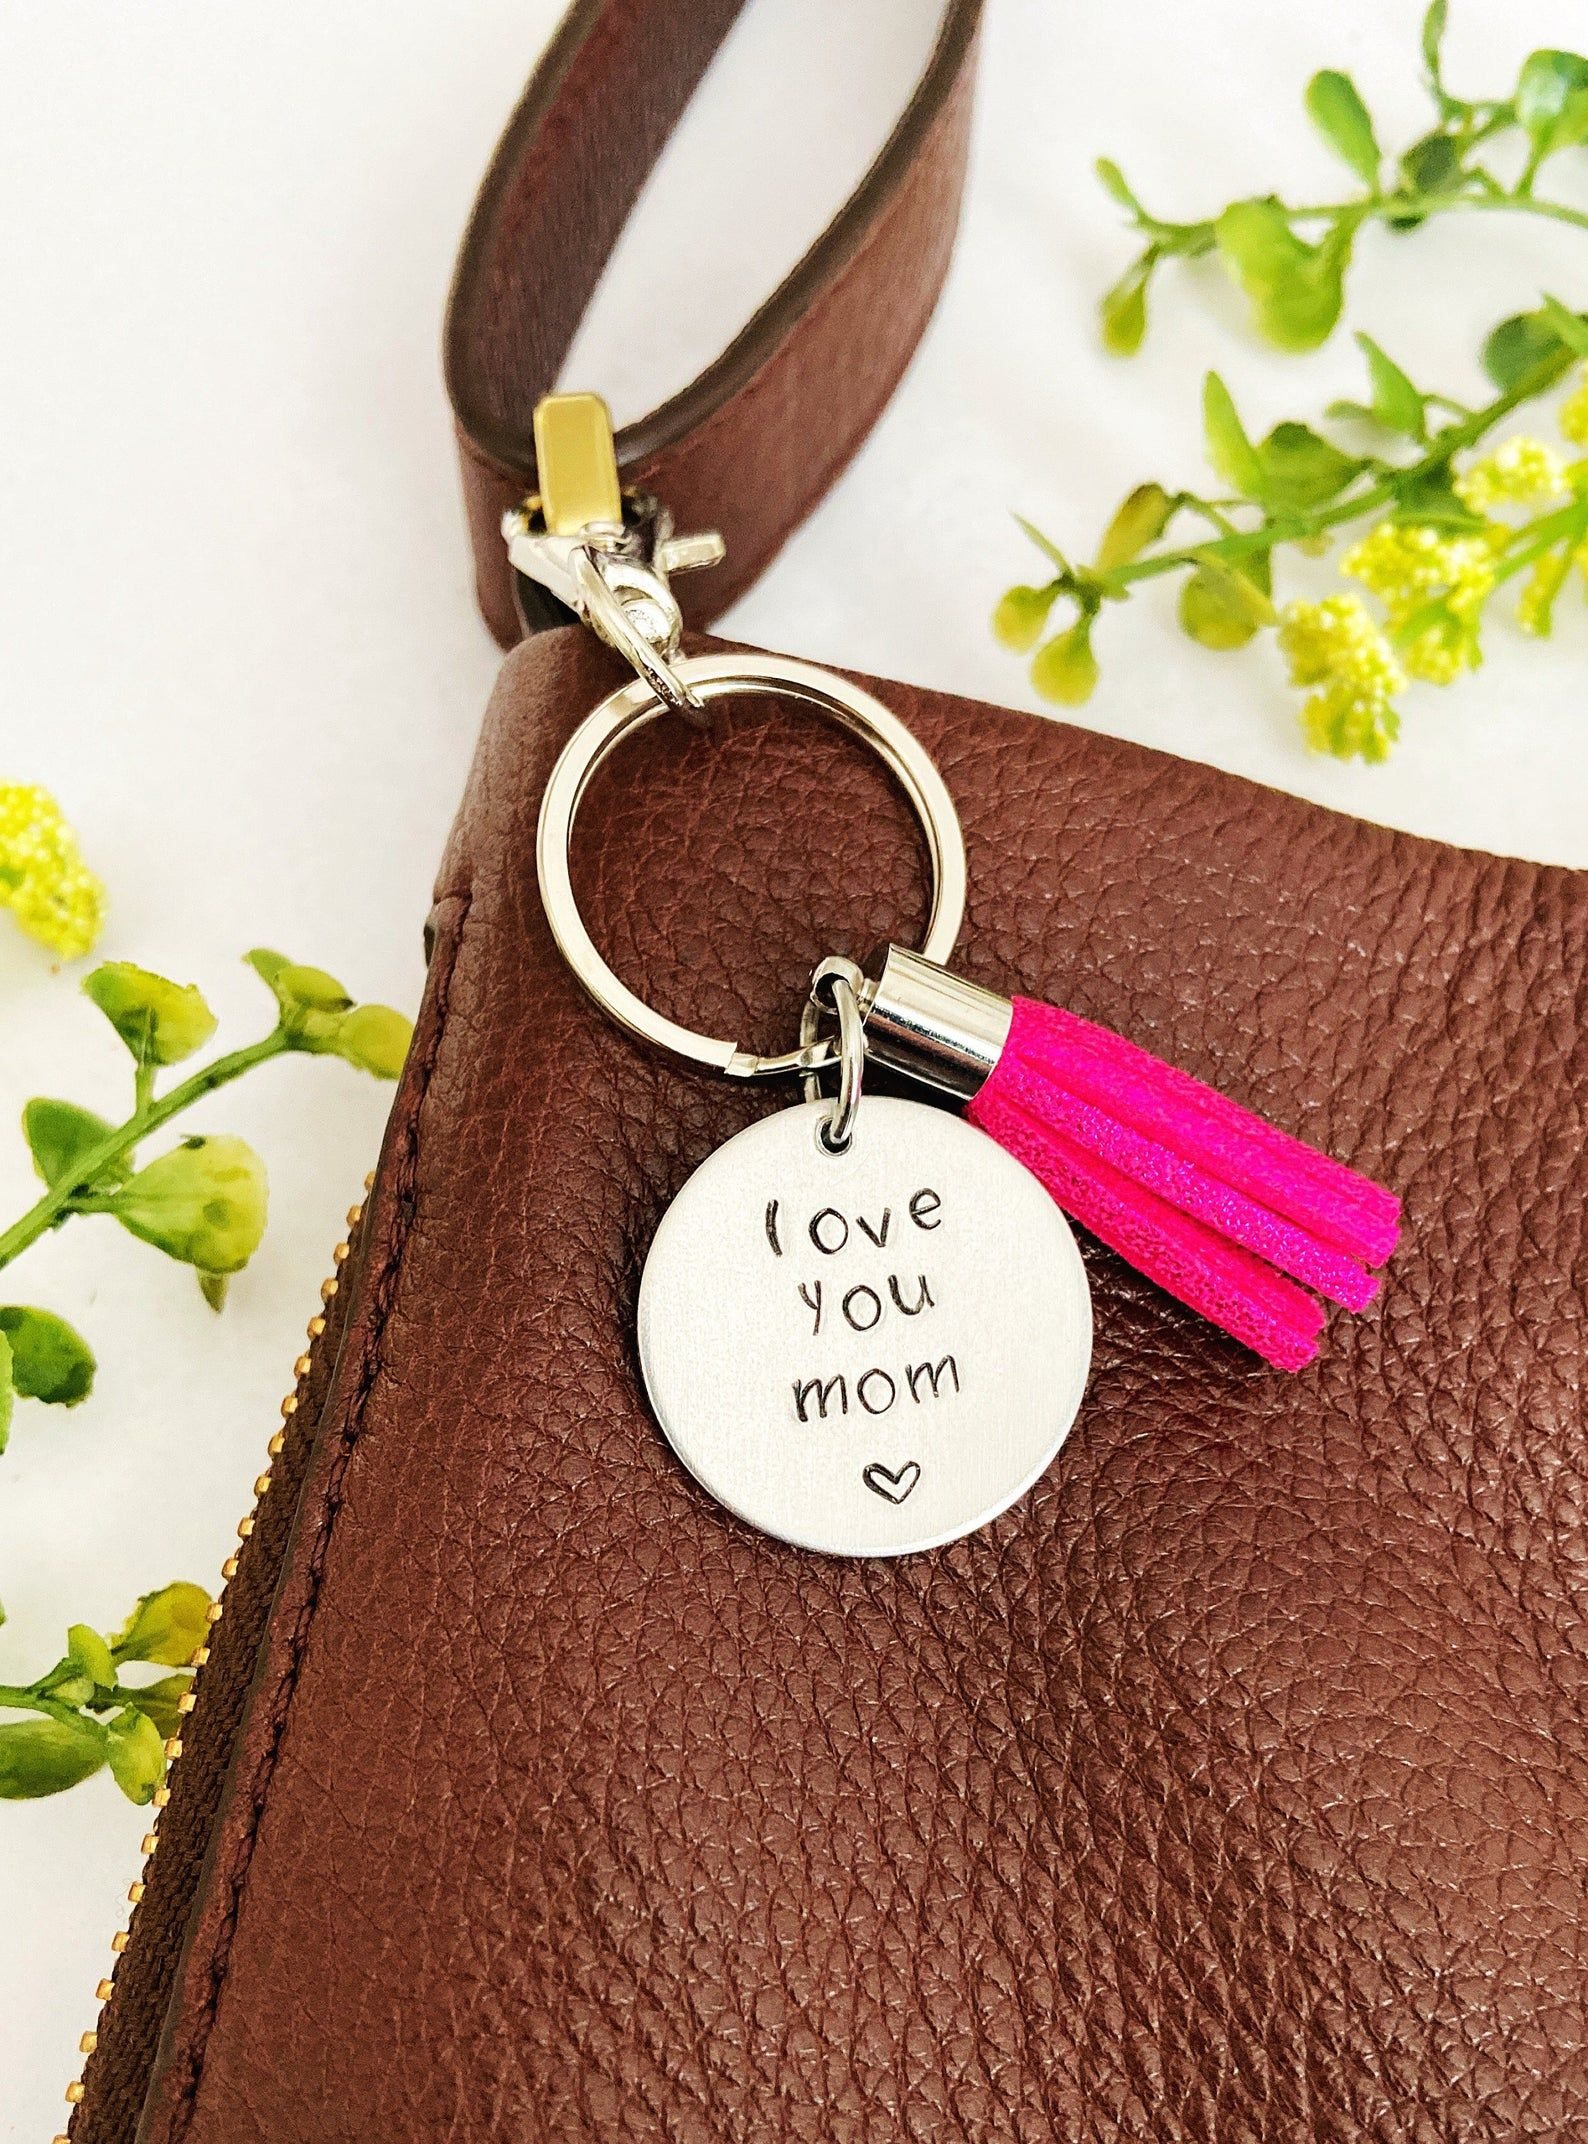 Mom gift from daughter son keychain for women mom keychain